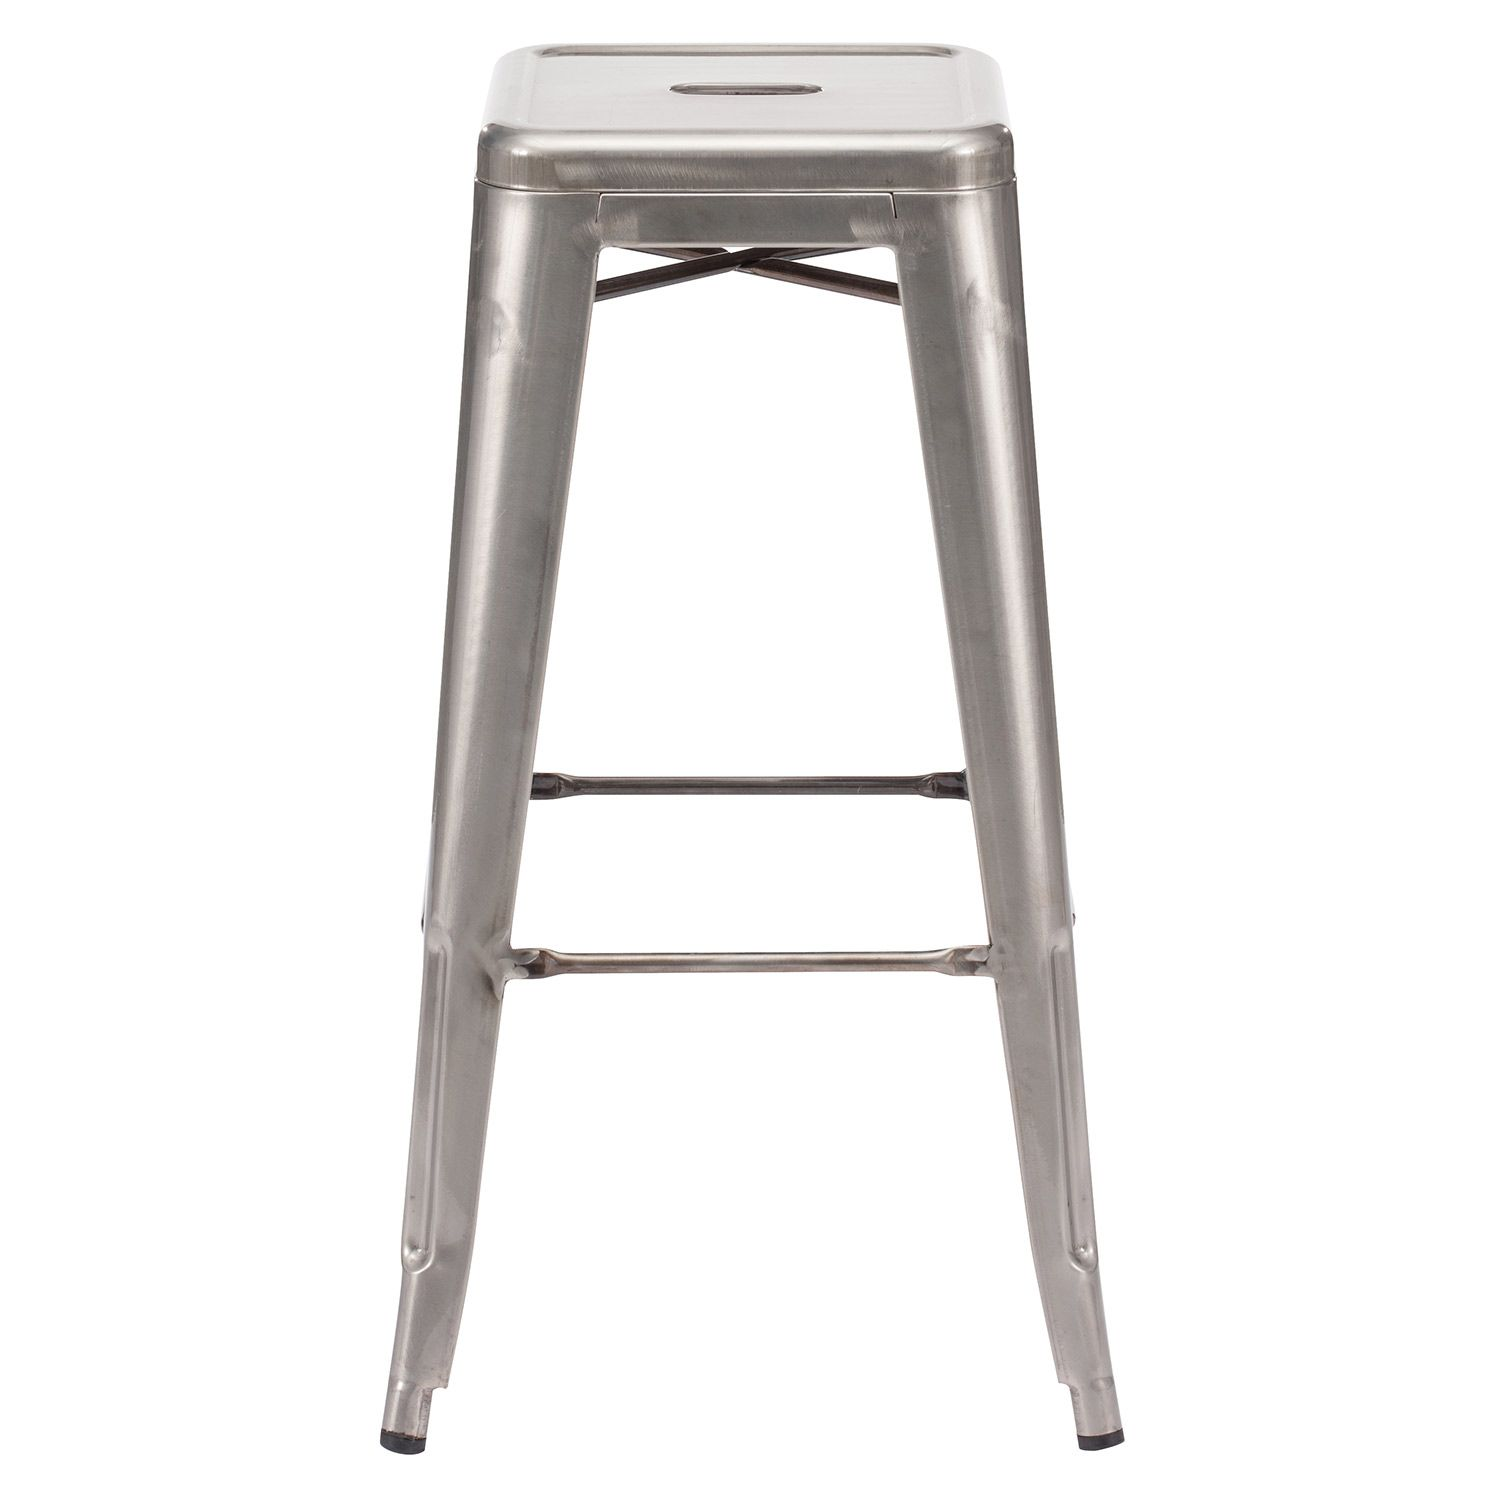 Marius Bar Chair Set of 4 Zinc Door seating barstool